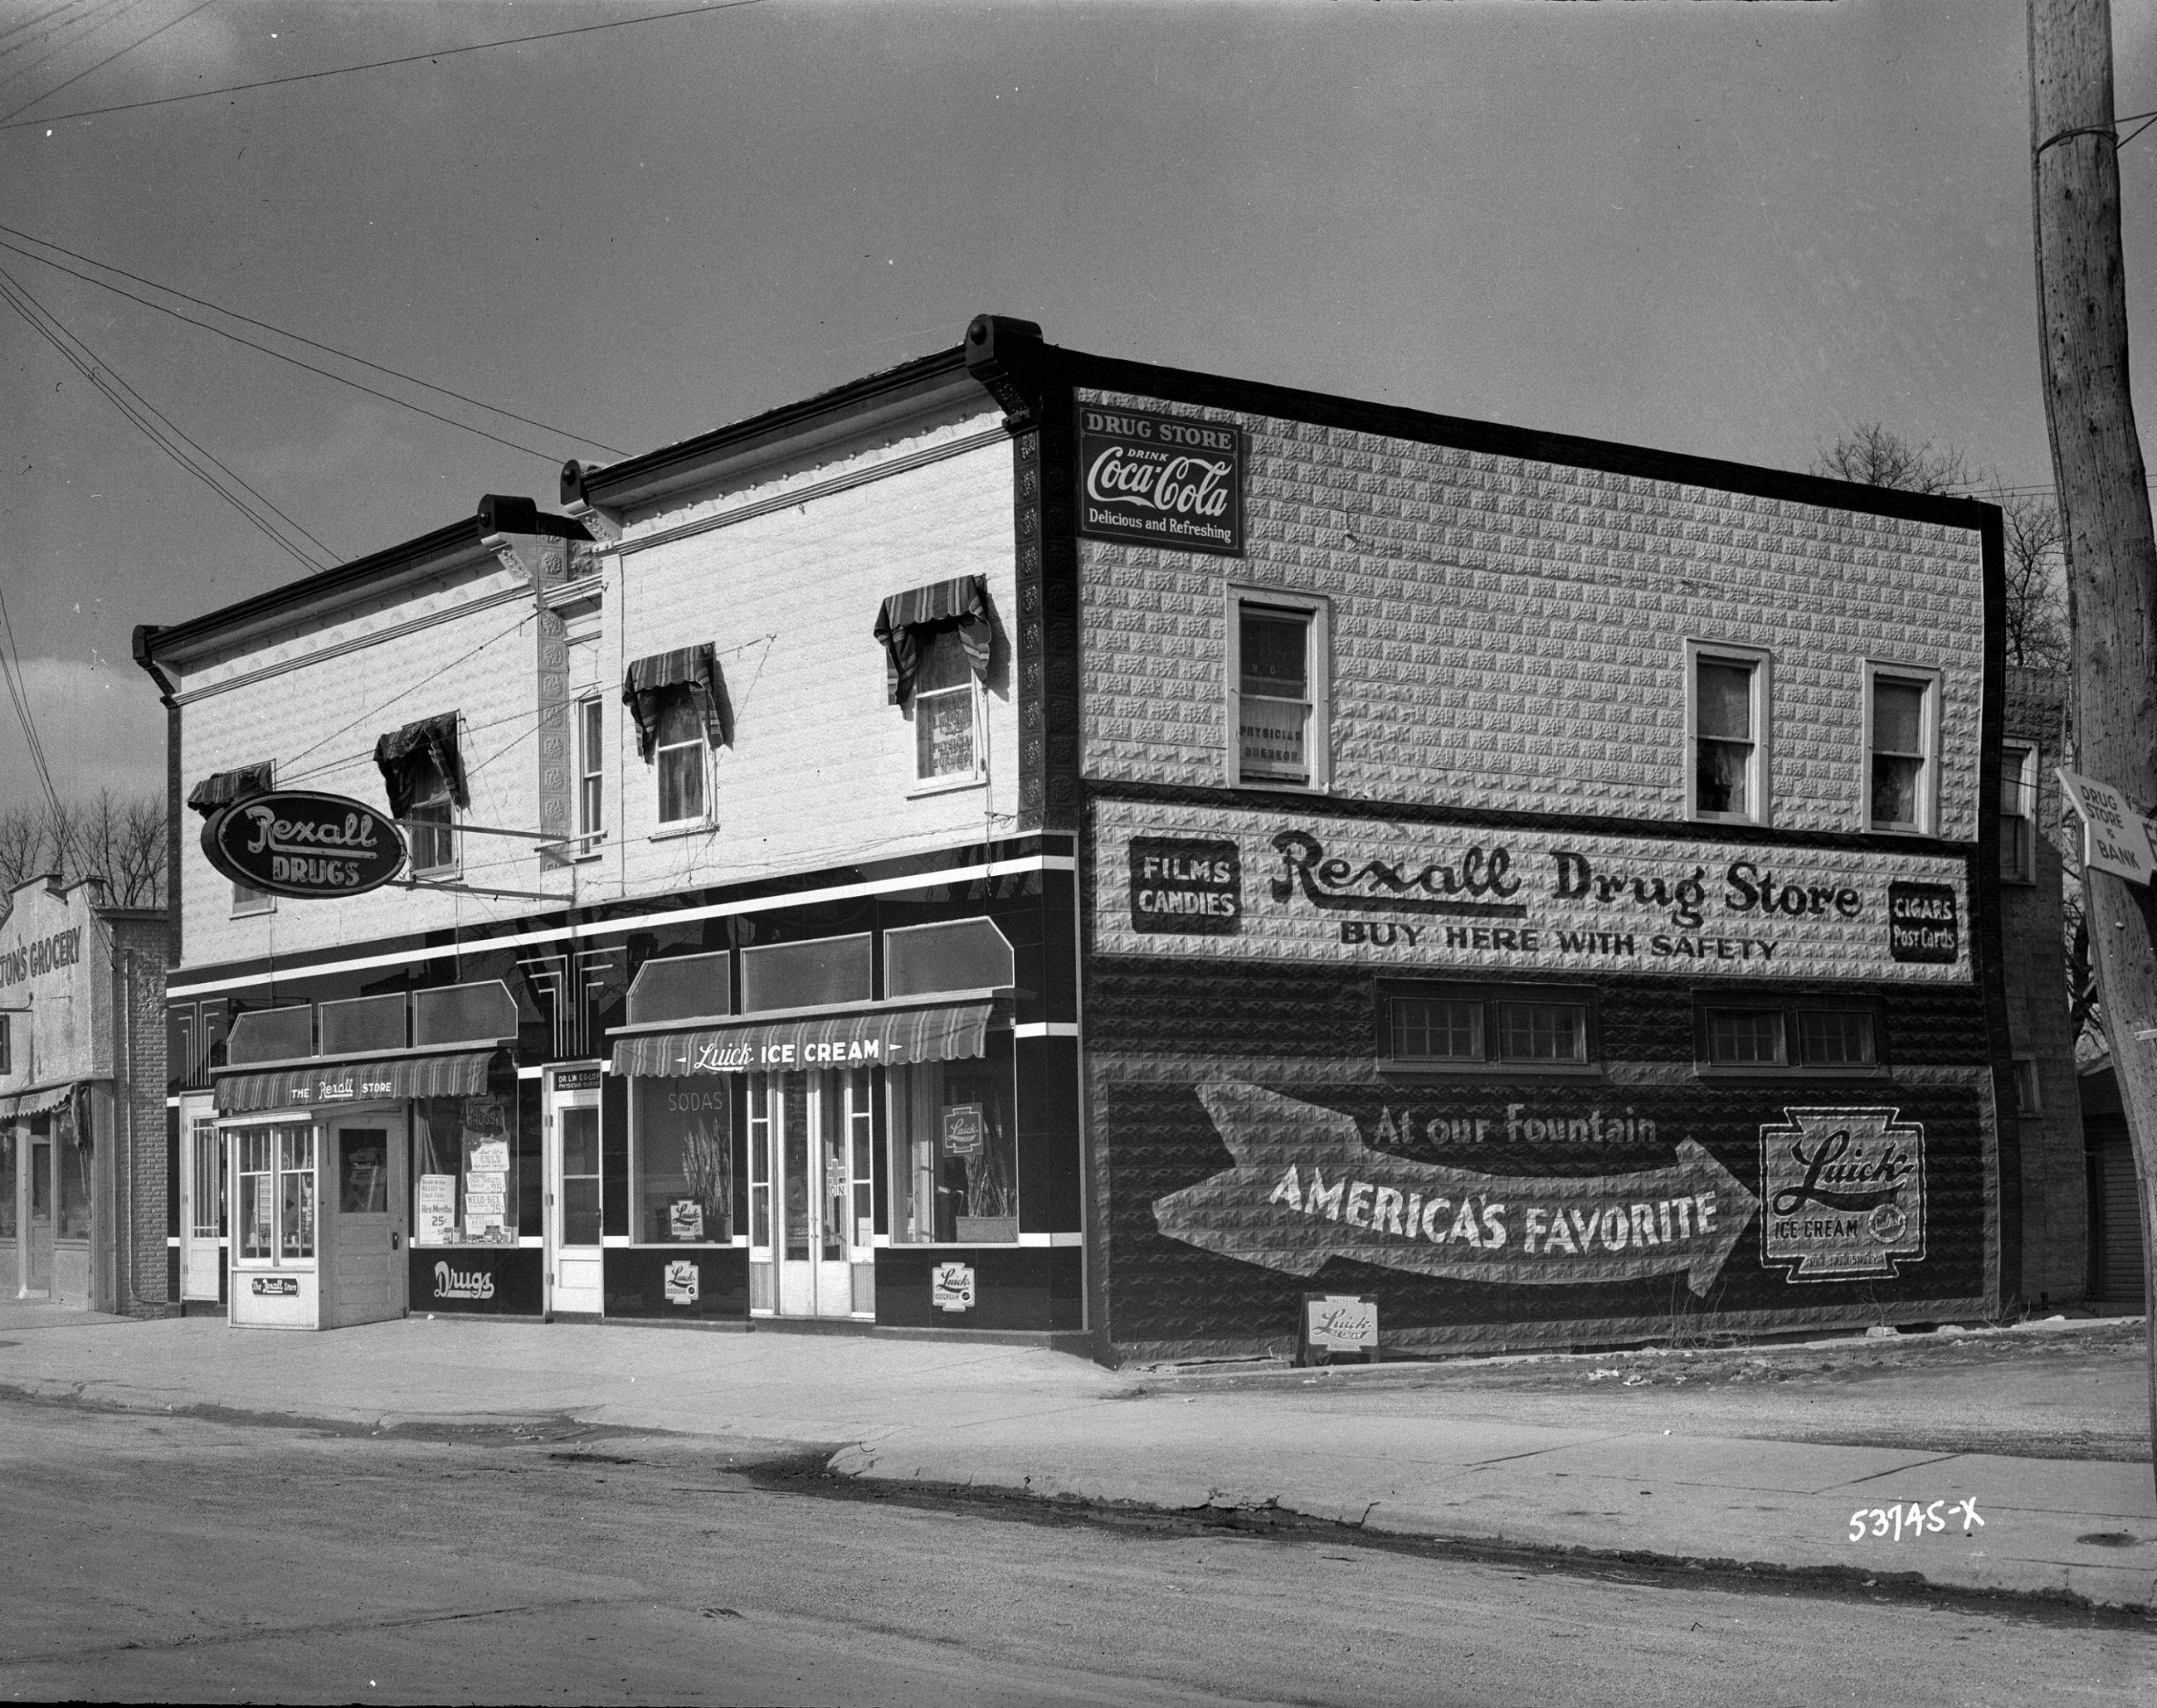 The building that was home to this Rexall Drug Store in 1937 still stands in Pewaukee today. It is currently home to a pet supply store.